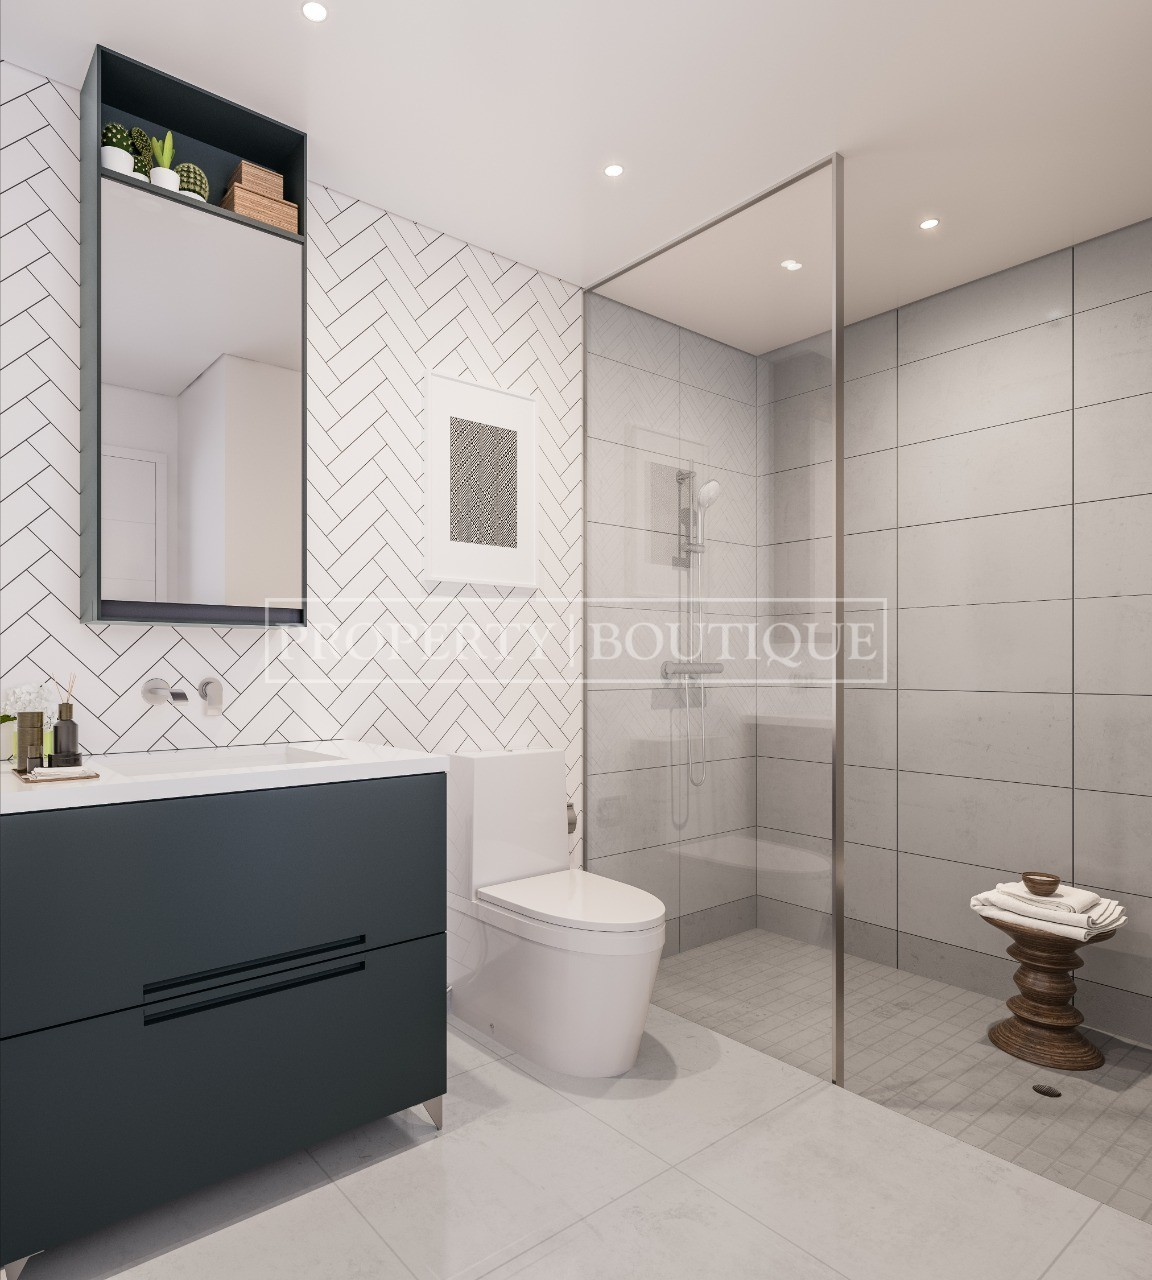 High Grade 1 Bed | Contemporary | Investor & End-user - Image 5